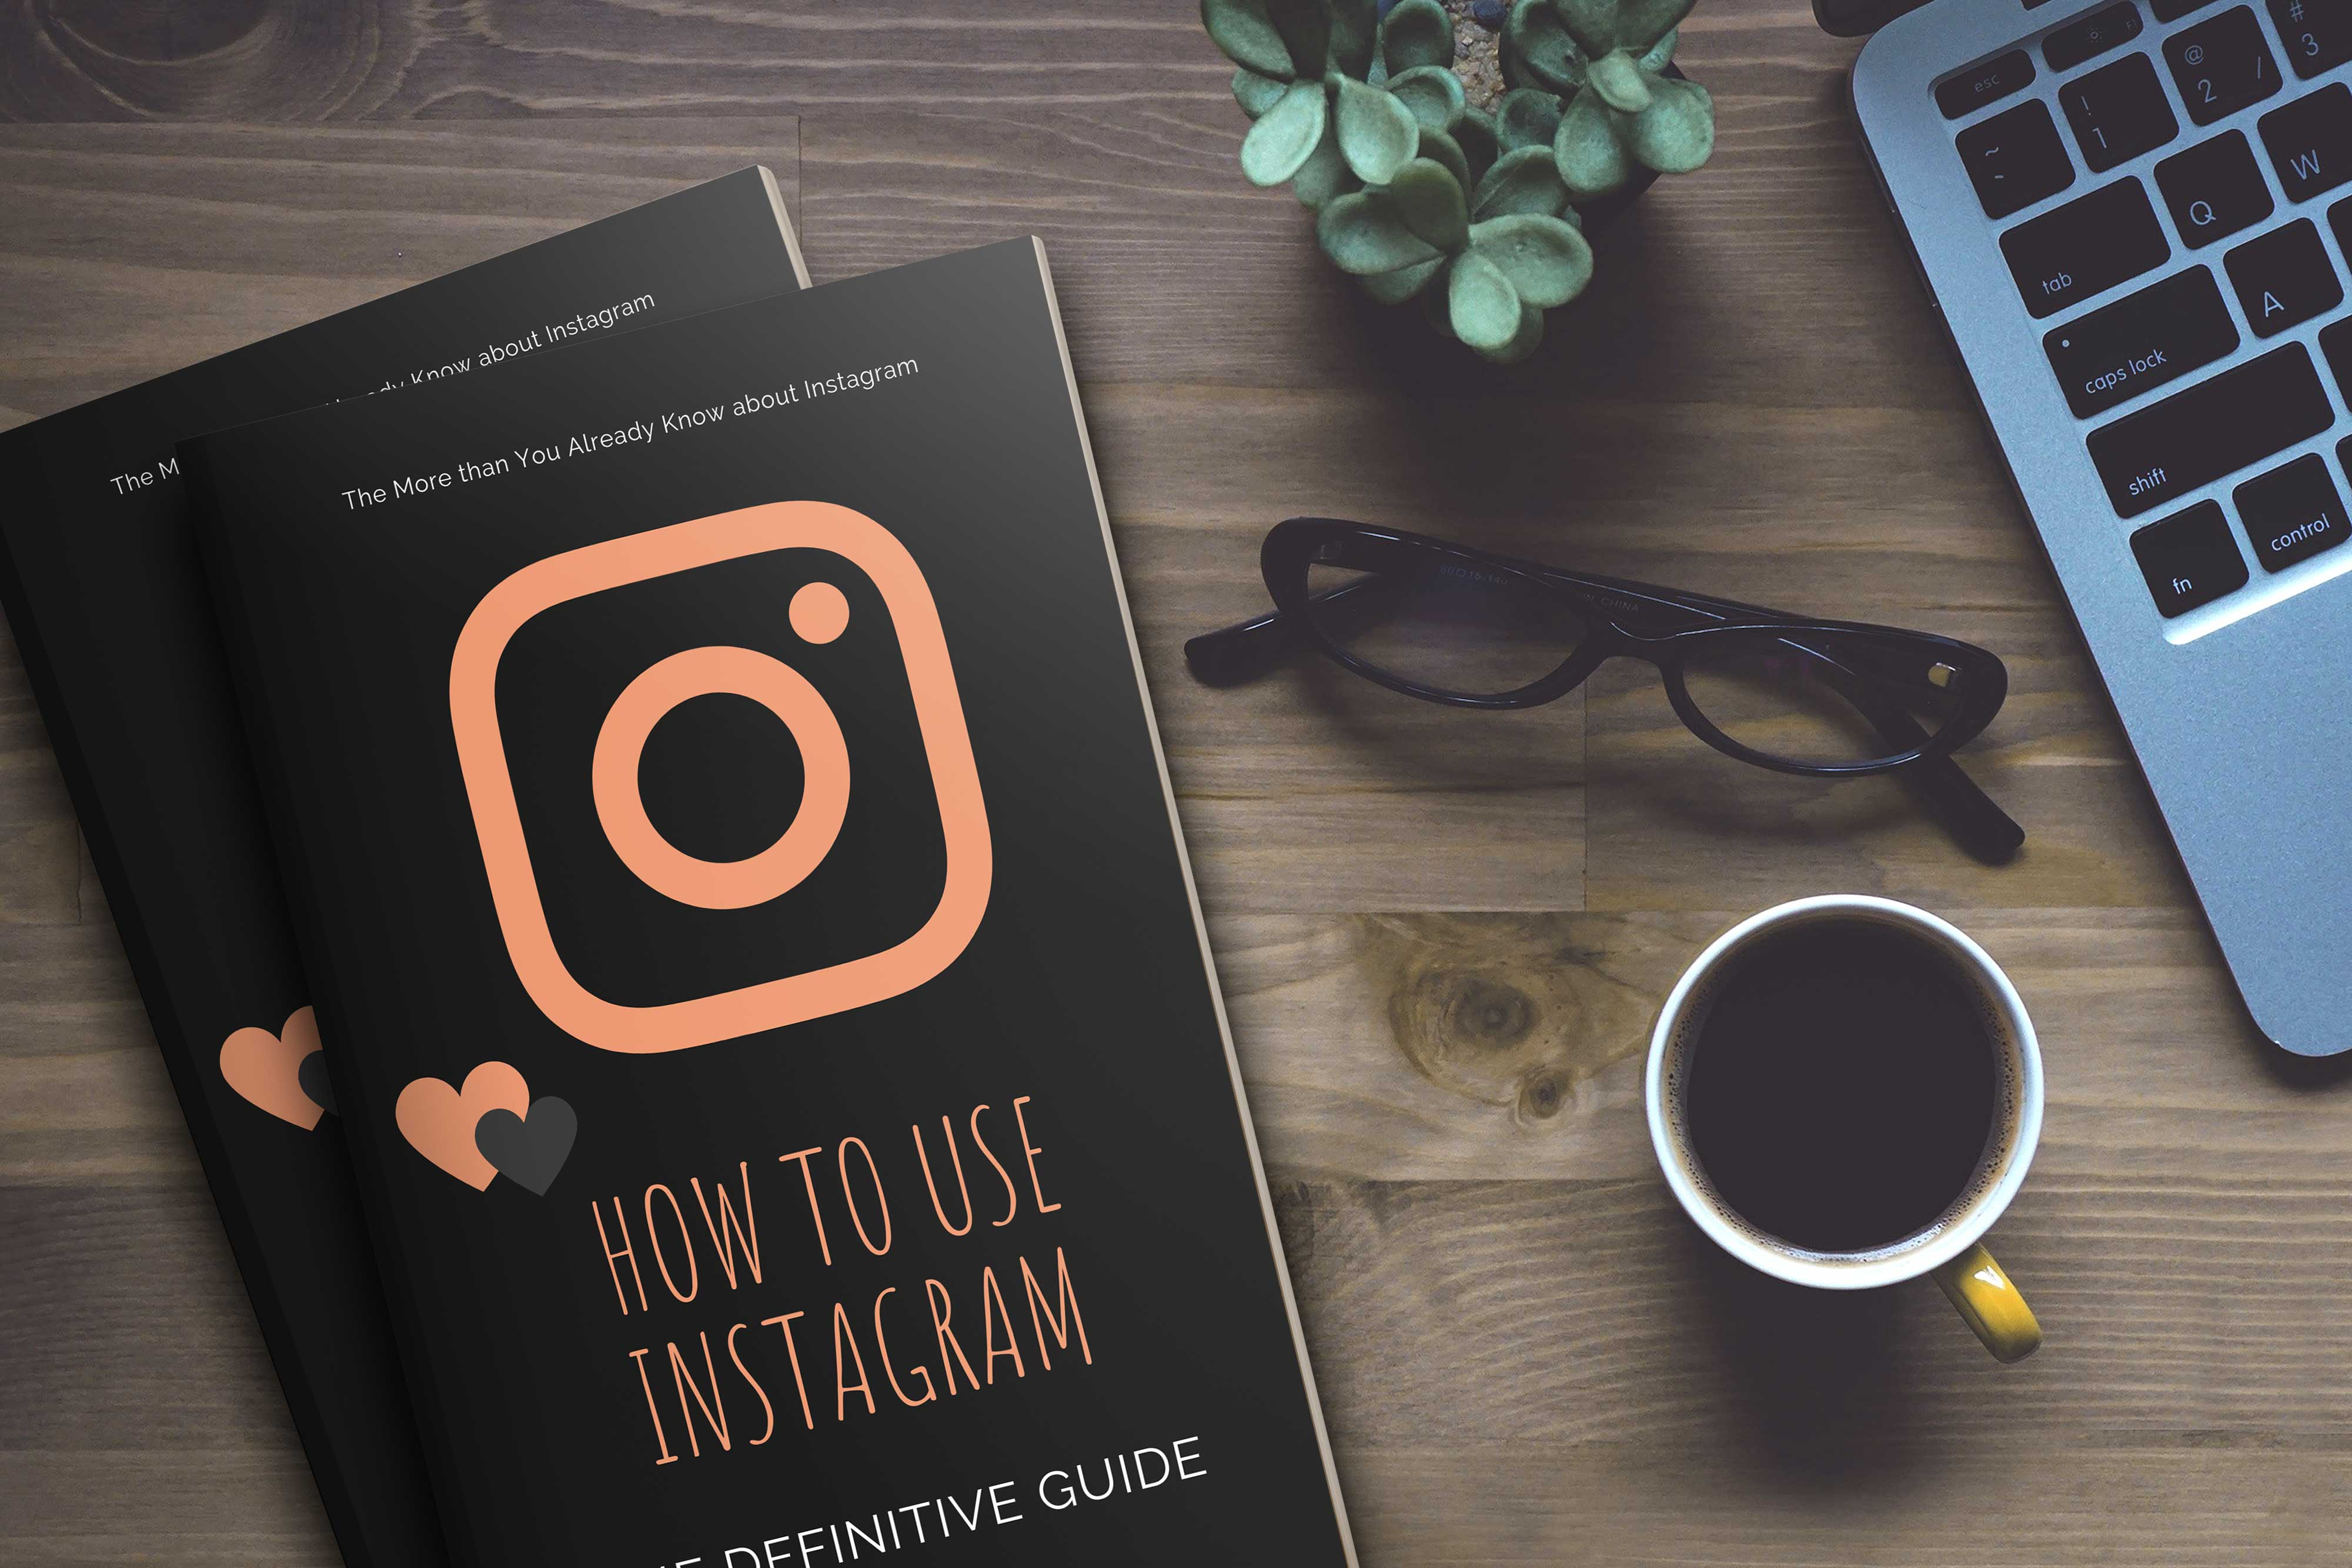 How to Use Instagram: The Definitive Guide